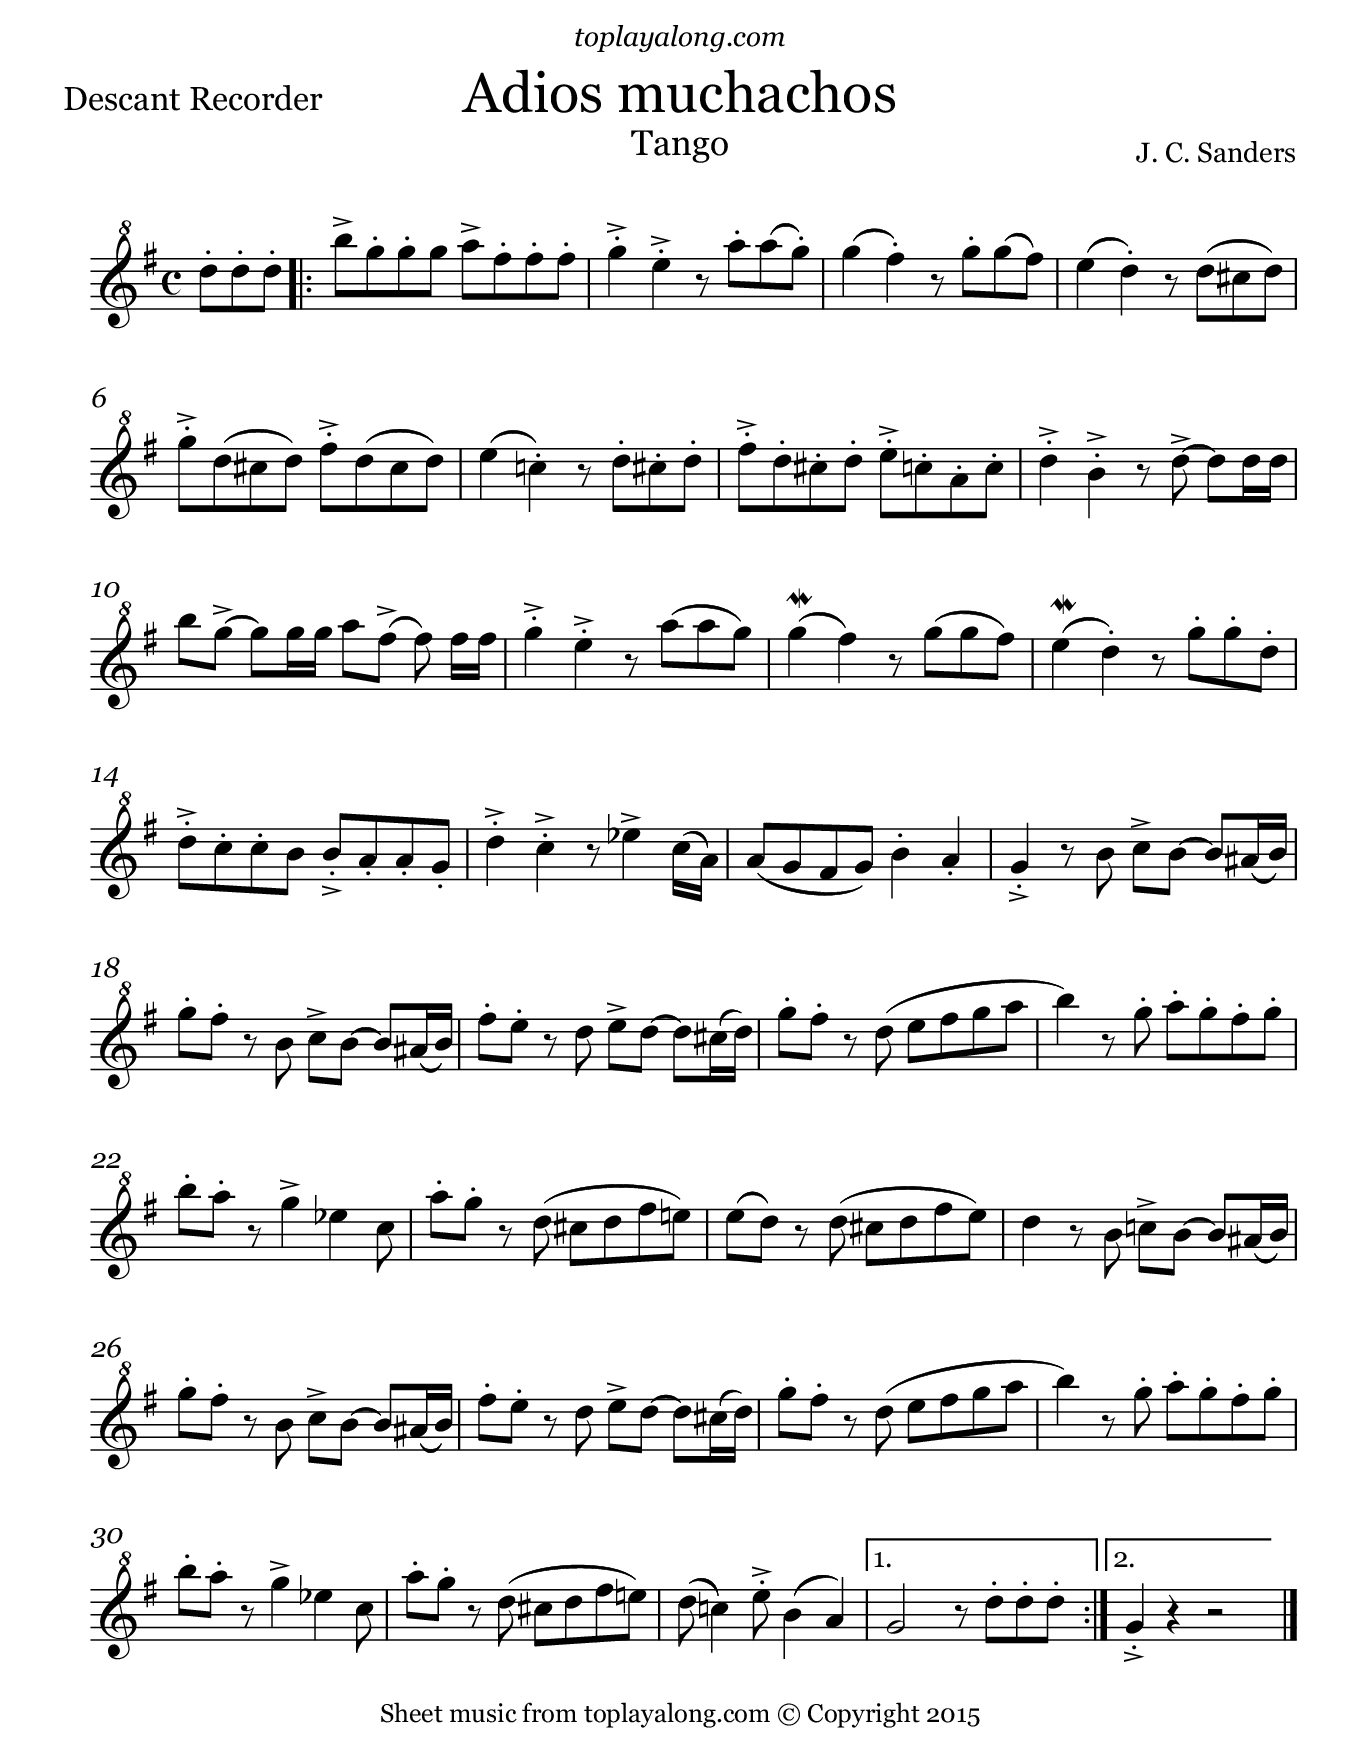 Adios Muchachos by Sanders. Sheet music for Recorder, page 1.